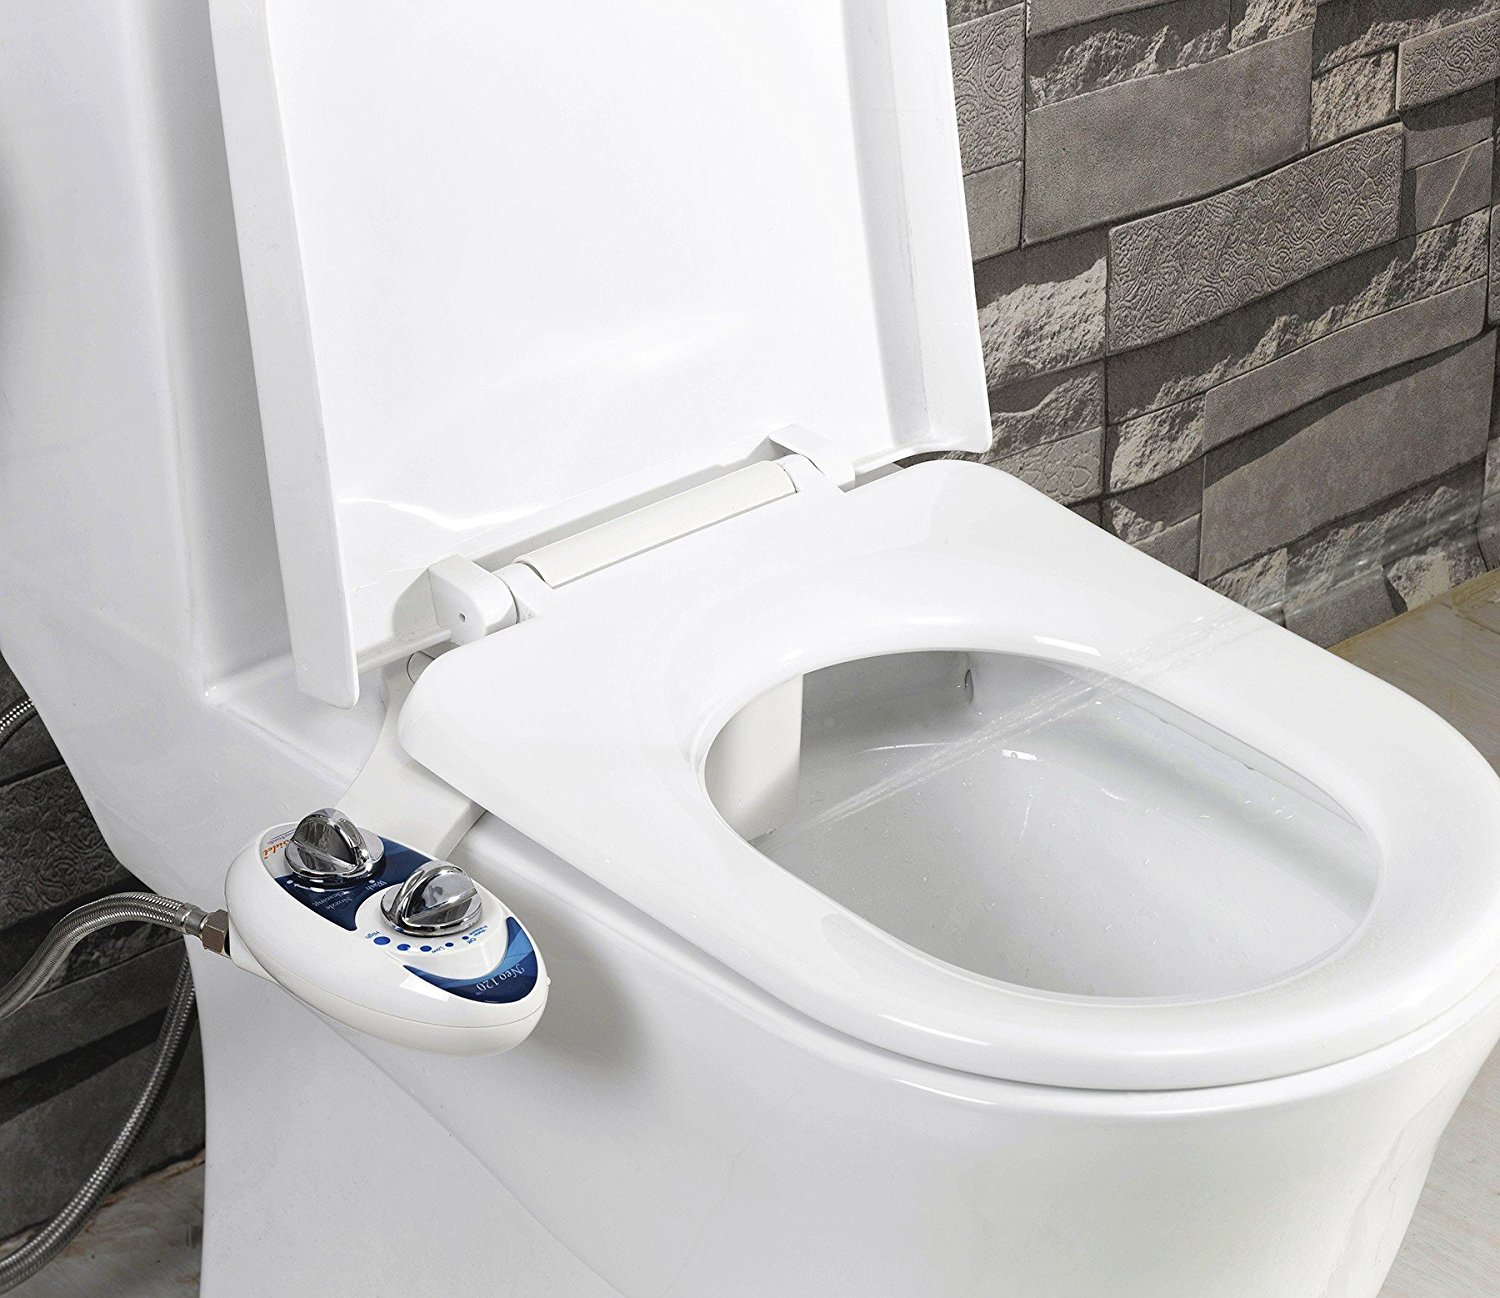 What Is The Main Purpose Of A Bidet